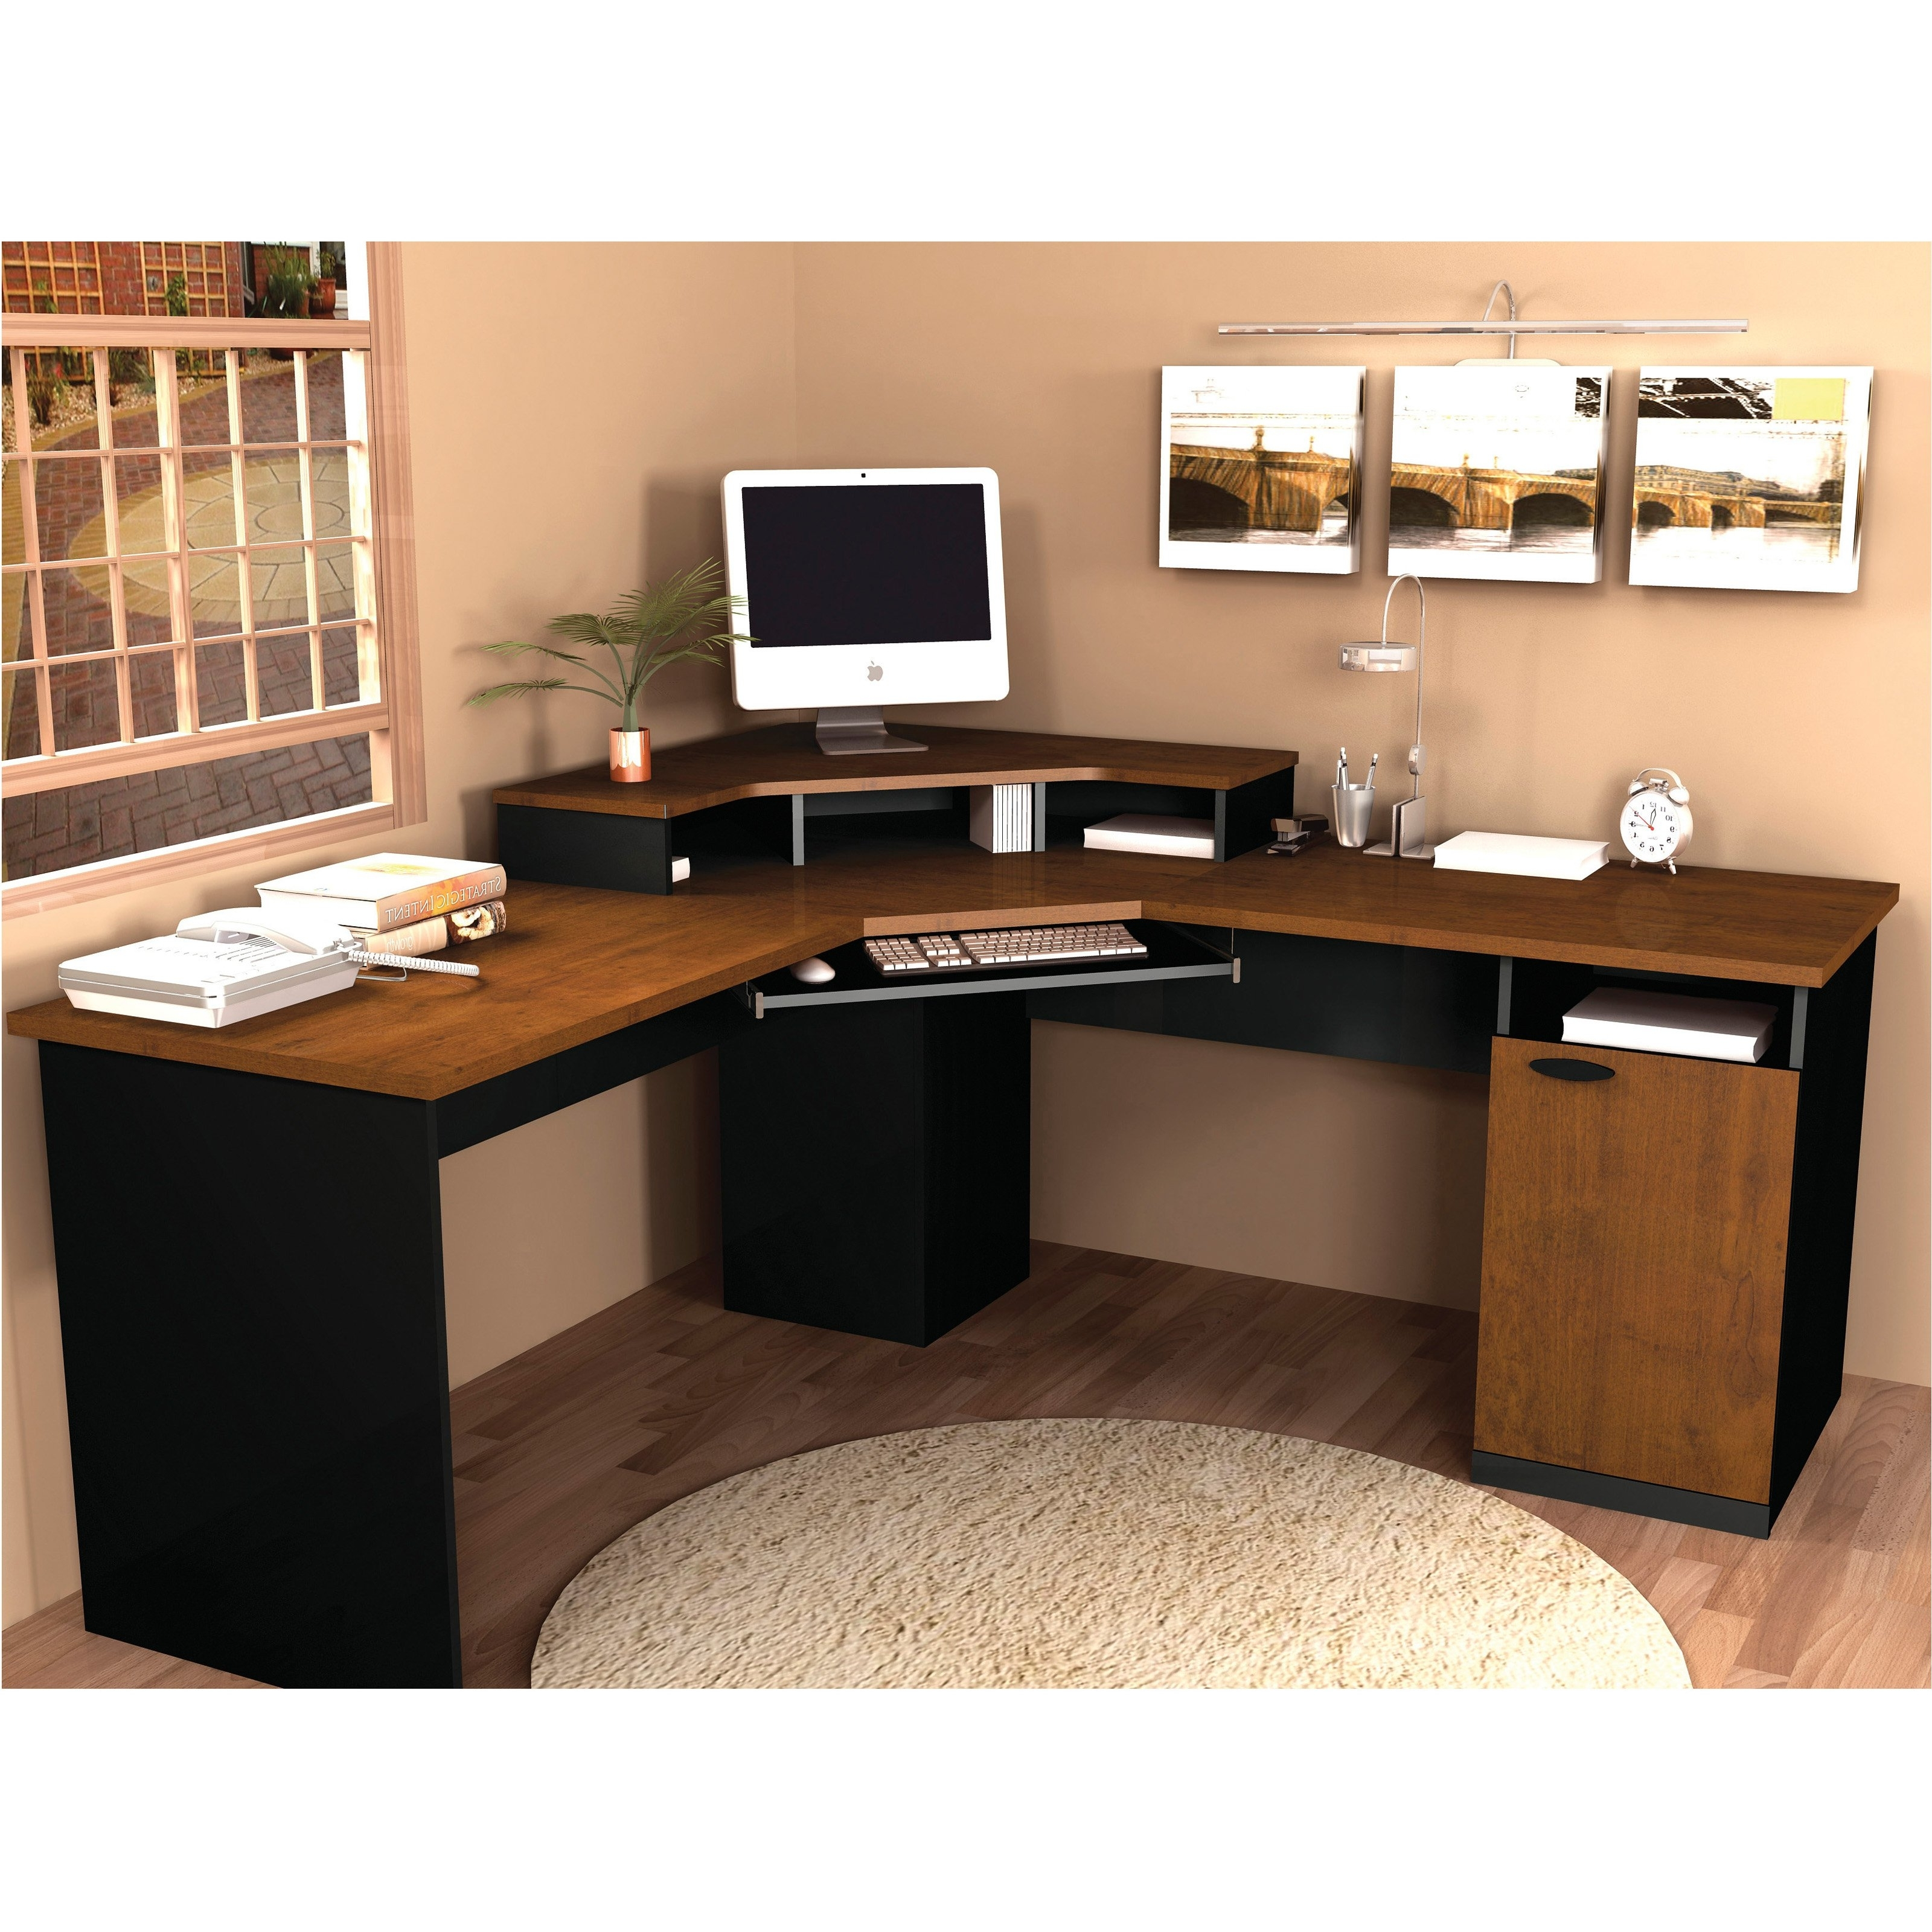 Most Up To Date Computer Desks For Home Intended For Shelf : Home Computer Desks Interior Design For Office Tips Supply (View 16 of 20)